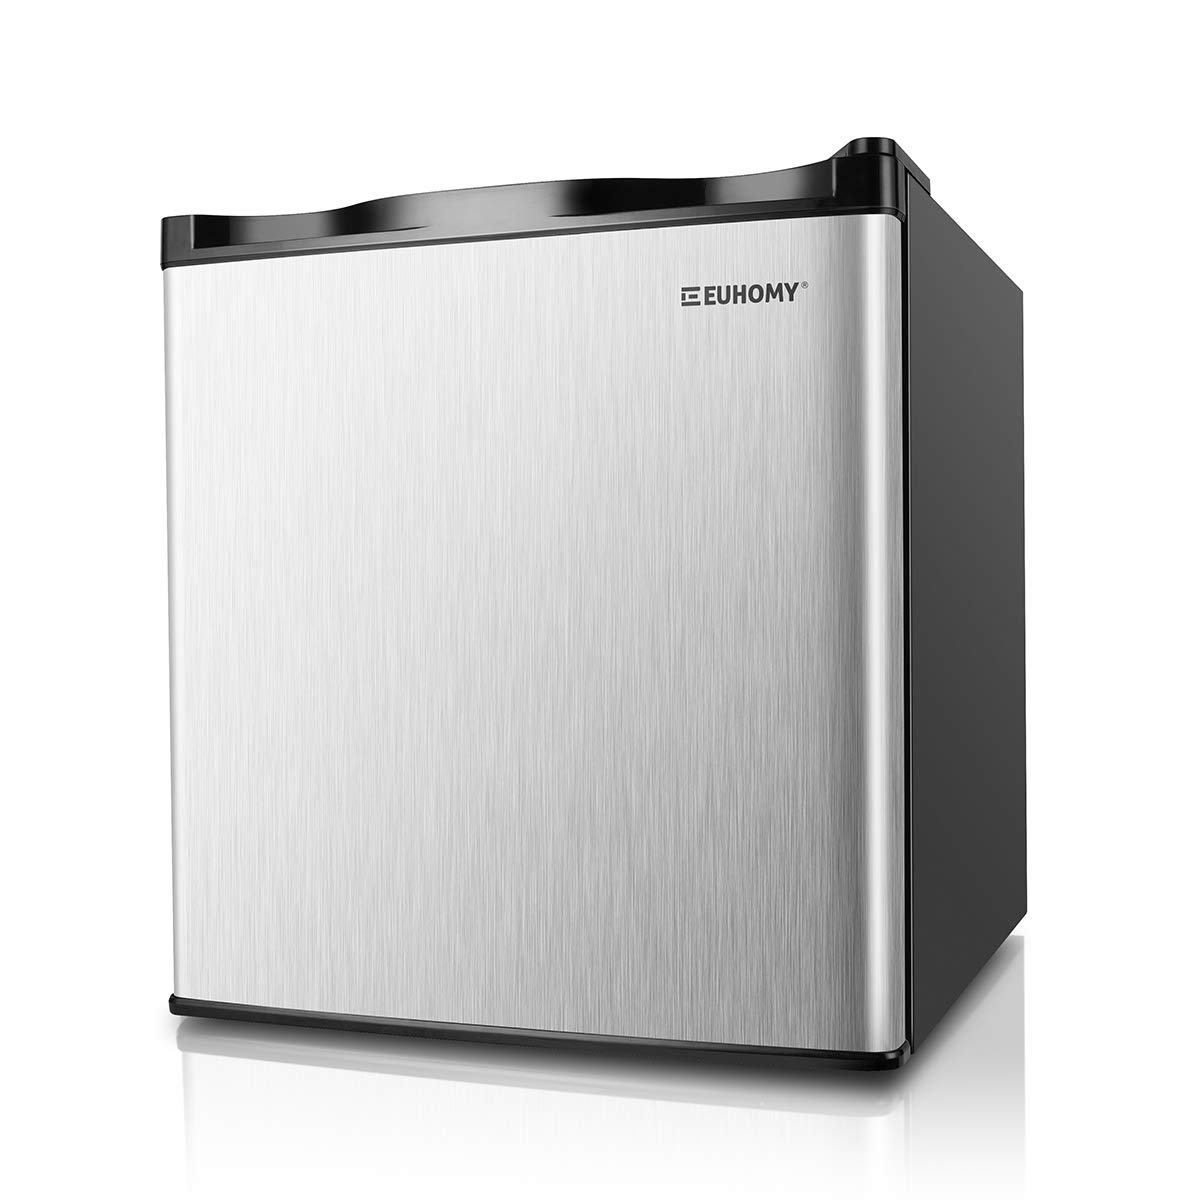 Euhomy Mini Freezer, Energy Star 1.1 Cubic Feet Single Door Countertop Compact Upright Freezer with Reversible Stainless Steel Door(Silver)